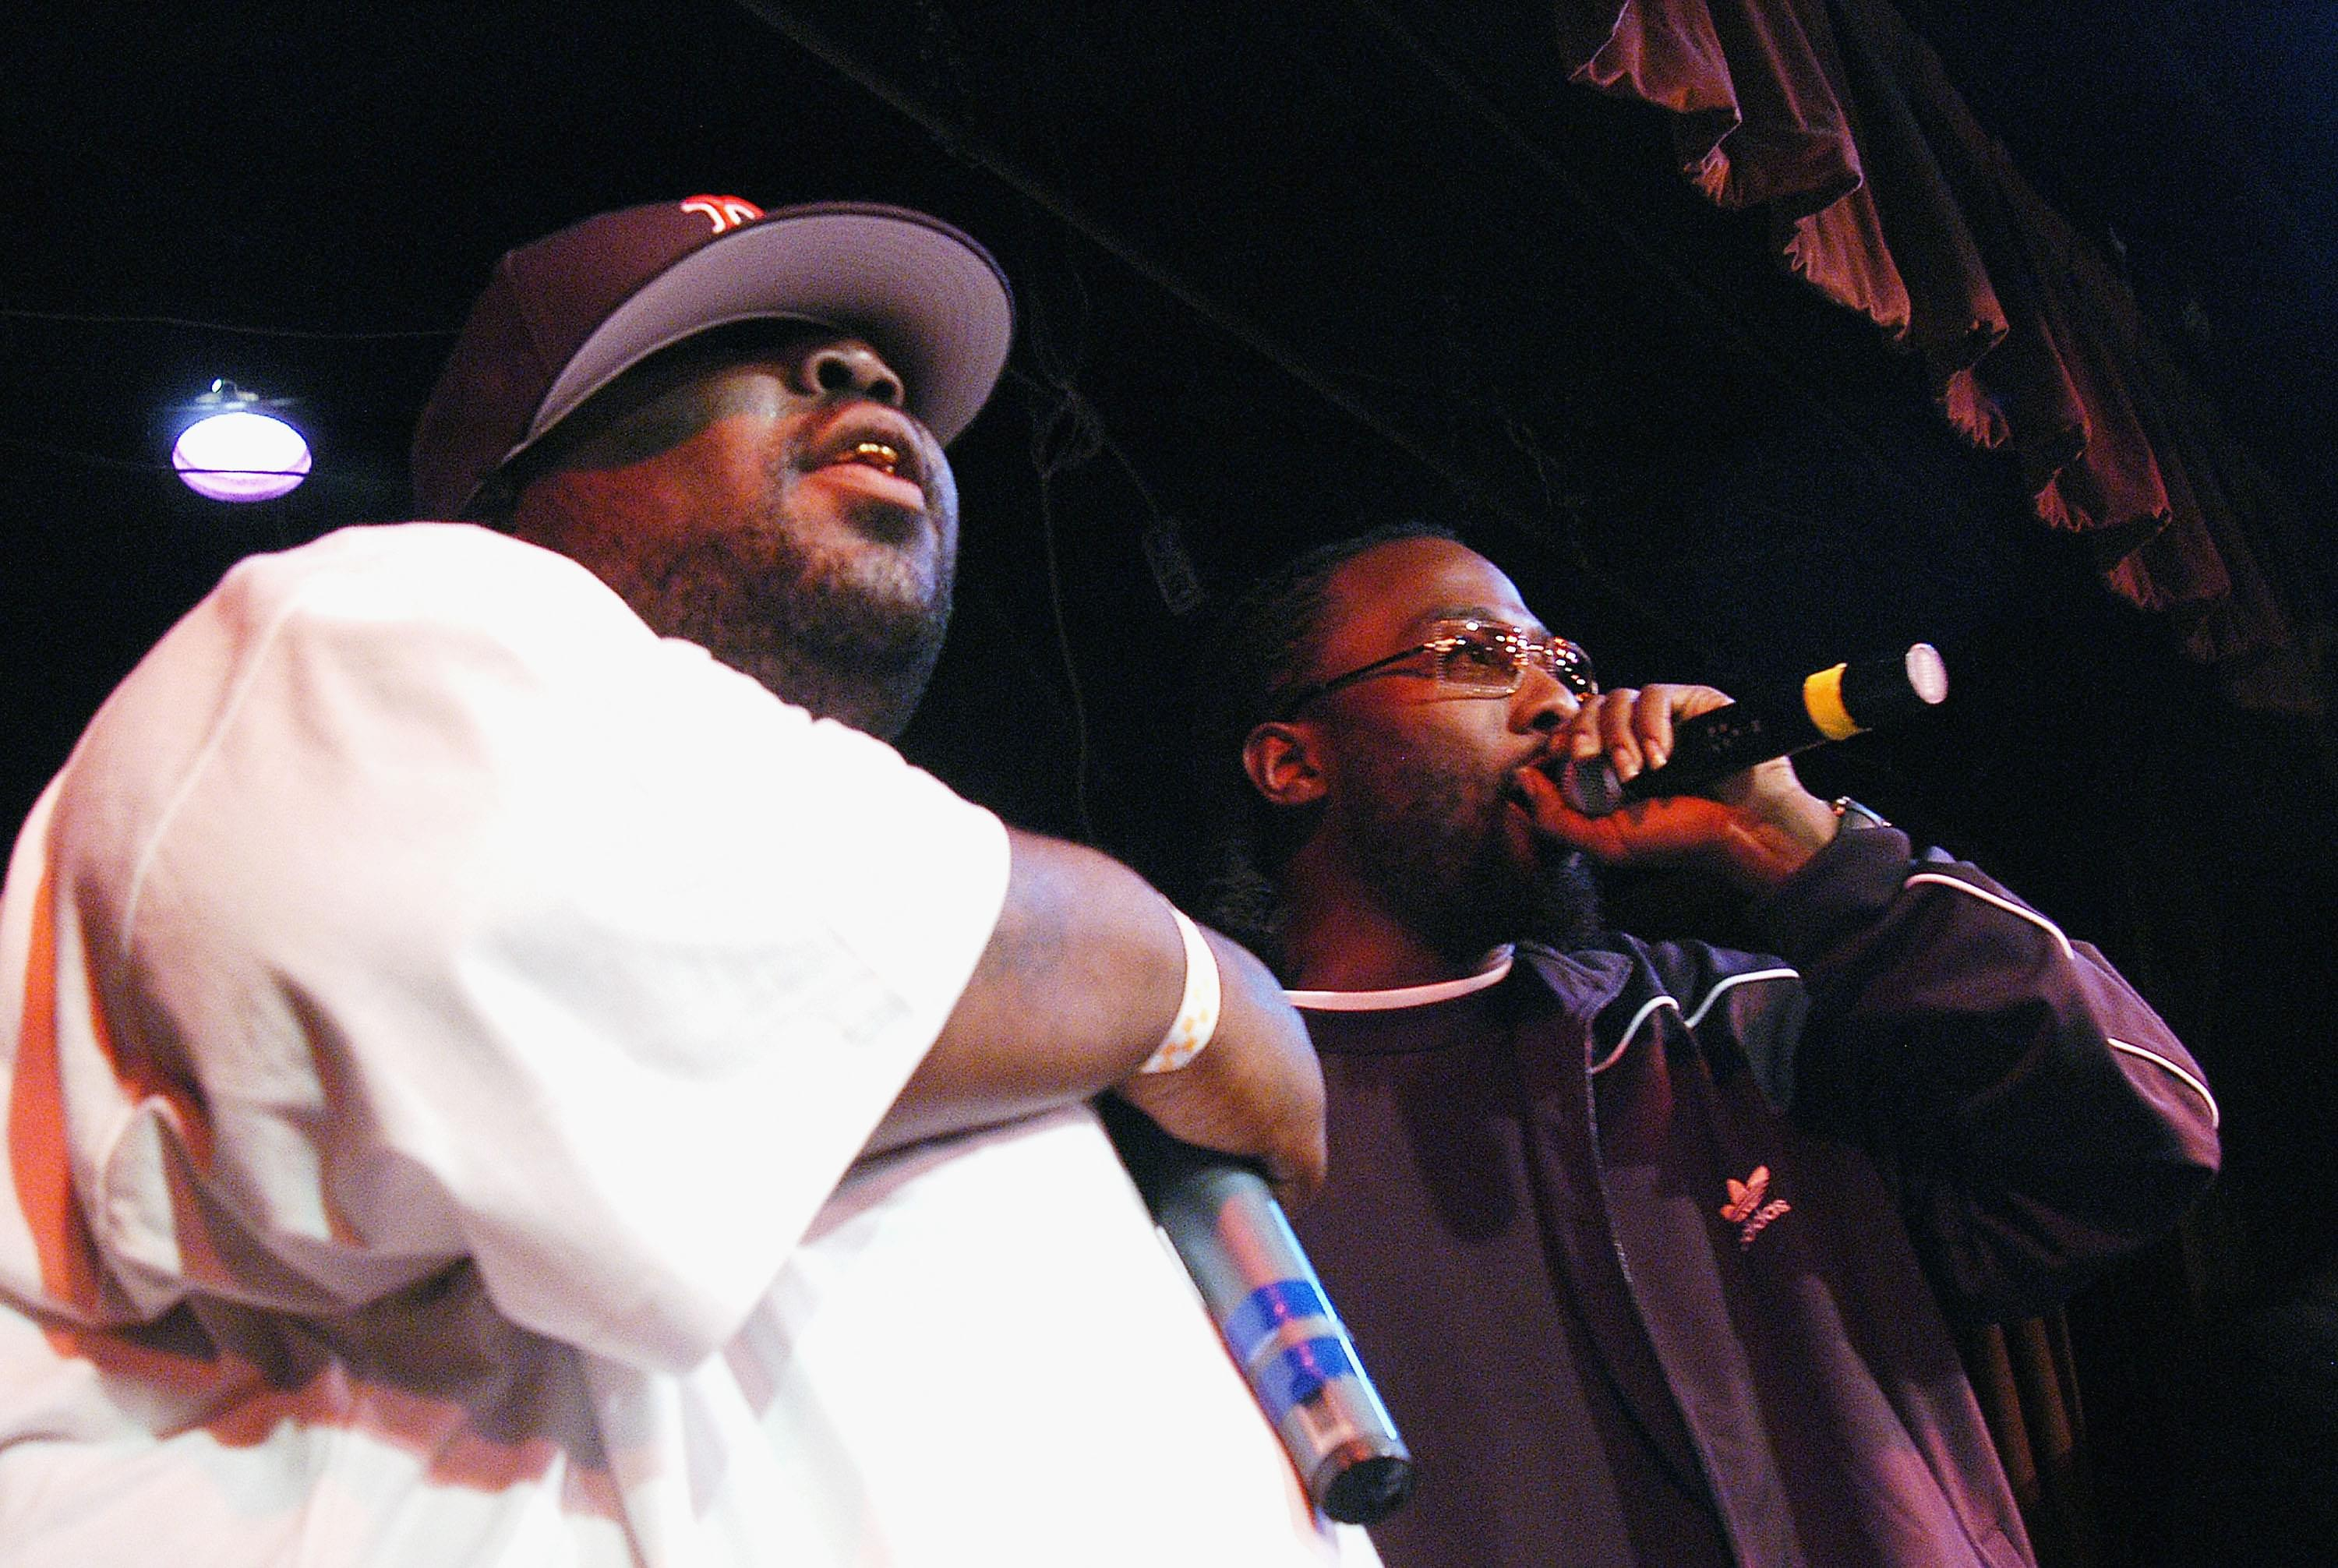 8Ball & MJG Inducted In 2018 Memphis Music Hall Of Fame